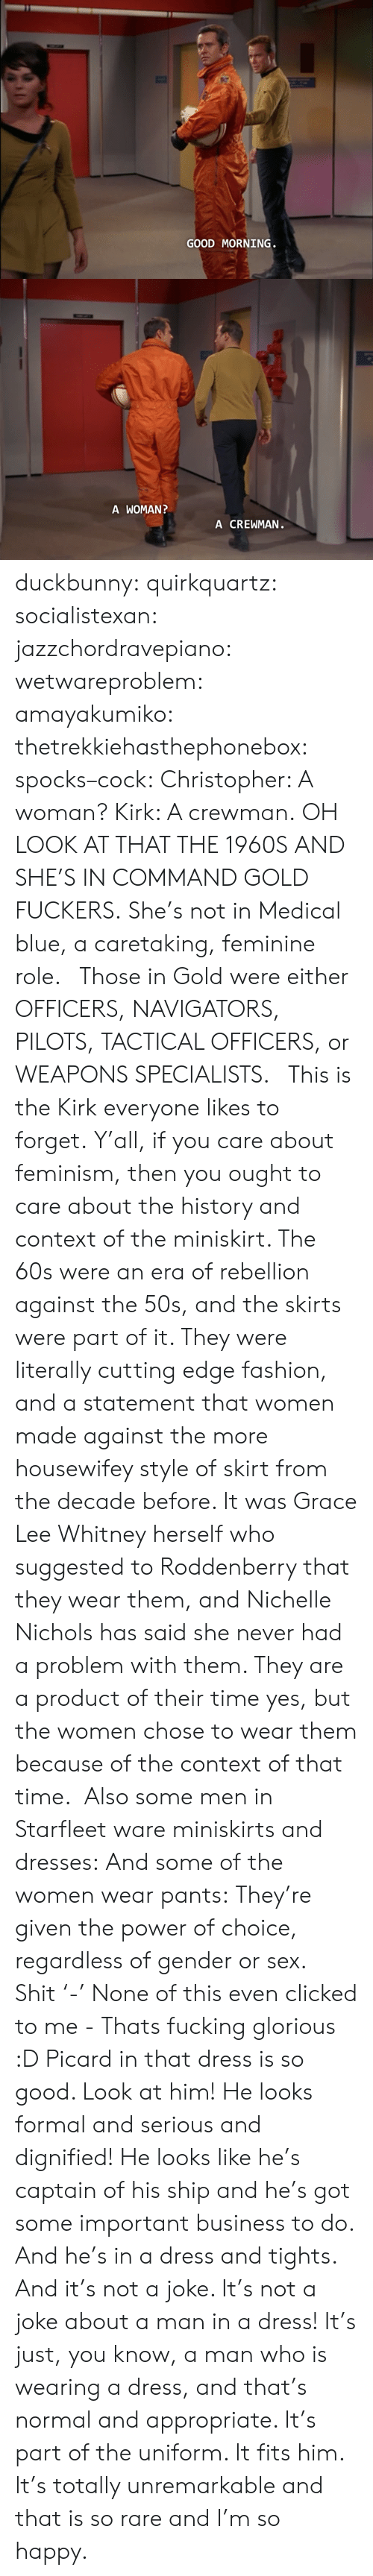 Fashion, Feminism, and Fucking: GOOD MORNING   A WOMAN  A CREWMAN duckbunny:  quirkquartz:   socialistexan:  jazzchordravepiano:  wetwareproblem:  amayakumiko:  thetrekkiehasthephonebox:  spocks–cock:  Christopher: A woman? Kirk: A crewman.  OH LOOK AT THAT THE 1960S  AND SHE'S IN COMMAND GOLD FUCKERS. She's not in Medical blue, a caretaking, feminine role.   Those in Gold were either OFFICERS, NAVIGATORS, PILOTS, TACTICAL OFFICERS, or WEAPONS SPECIALISTS.    This is the Kirk everyone likes to forget.  Y'all, if you care about feminism, then you ought to care about the history and context of the miniskirt. The 60s were an era of rebellion against the 50s, and the skirts were part of it. They were literally cutting edge fashion, and a statement that women made against the more housewifey style of skirt from the decade before. It was Grace Lee Whitney herself who suggested to Roddenberry that they wear them, and Nichelle Nichols has said she never had a problem with them. They are a product of their time yes, but the women chose to wear them because of the context of that time.   Also some men in Starfleet ware miniskirts and dresses: And some of the women wear pants: They're given the power of choice, regardless of gender or sex.   Shit '-' None of this even clicked to me - Thats fucking glorious :D   Picard in that dress is so good. Look at him! He looks formal and serious and dignified! He looks like he's captain of his ship and he's got some important business to do. And he's in a dress and tights. And it's not a joke. It's not a joke about a man in a dress! It's just, you know, a man who is wearing a dress, and that's normal and appropriate. It's part of the uniform. It fits him. It's totally unremarkable and that is so rare and I'm so happy.